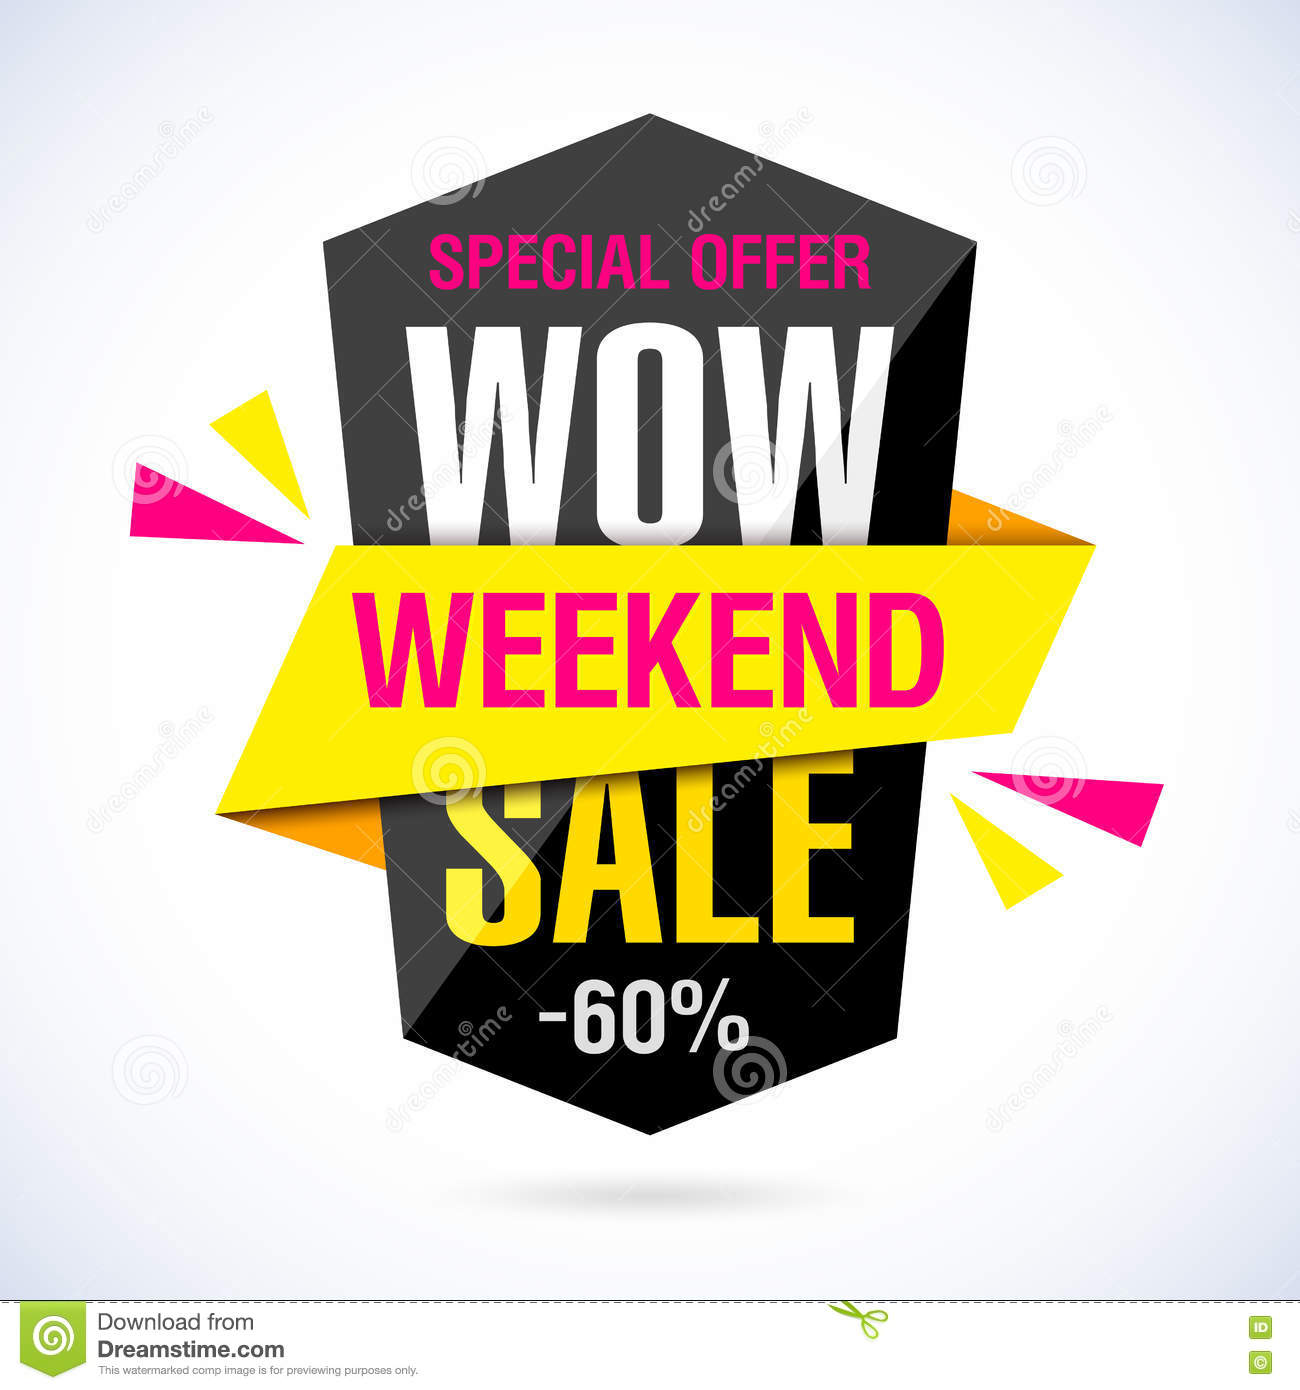 Weekend Discount: Wow Weekend Sale Banner Stock Vector. Illustration Of Sign